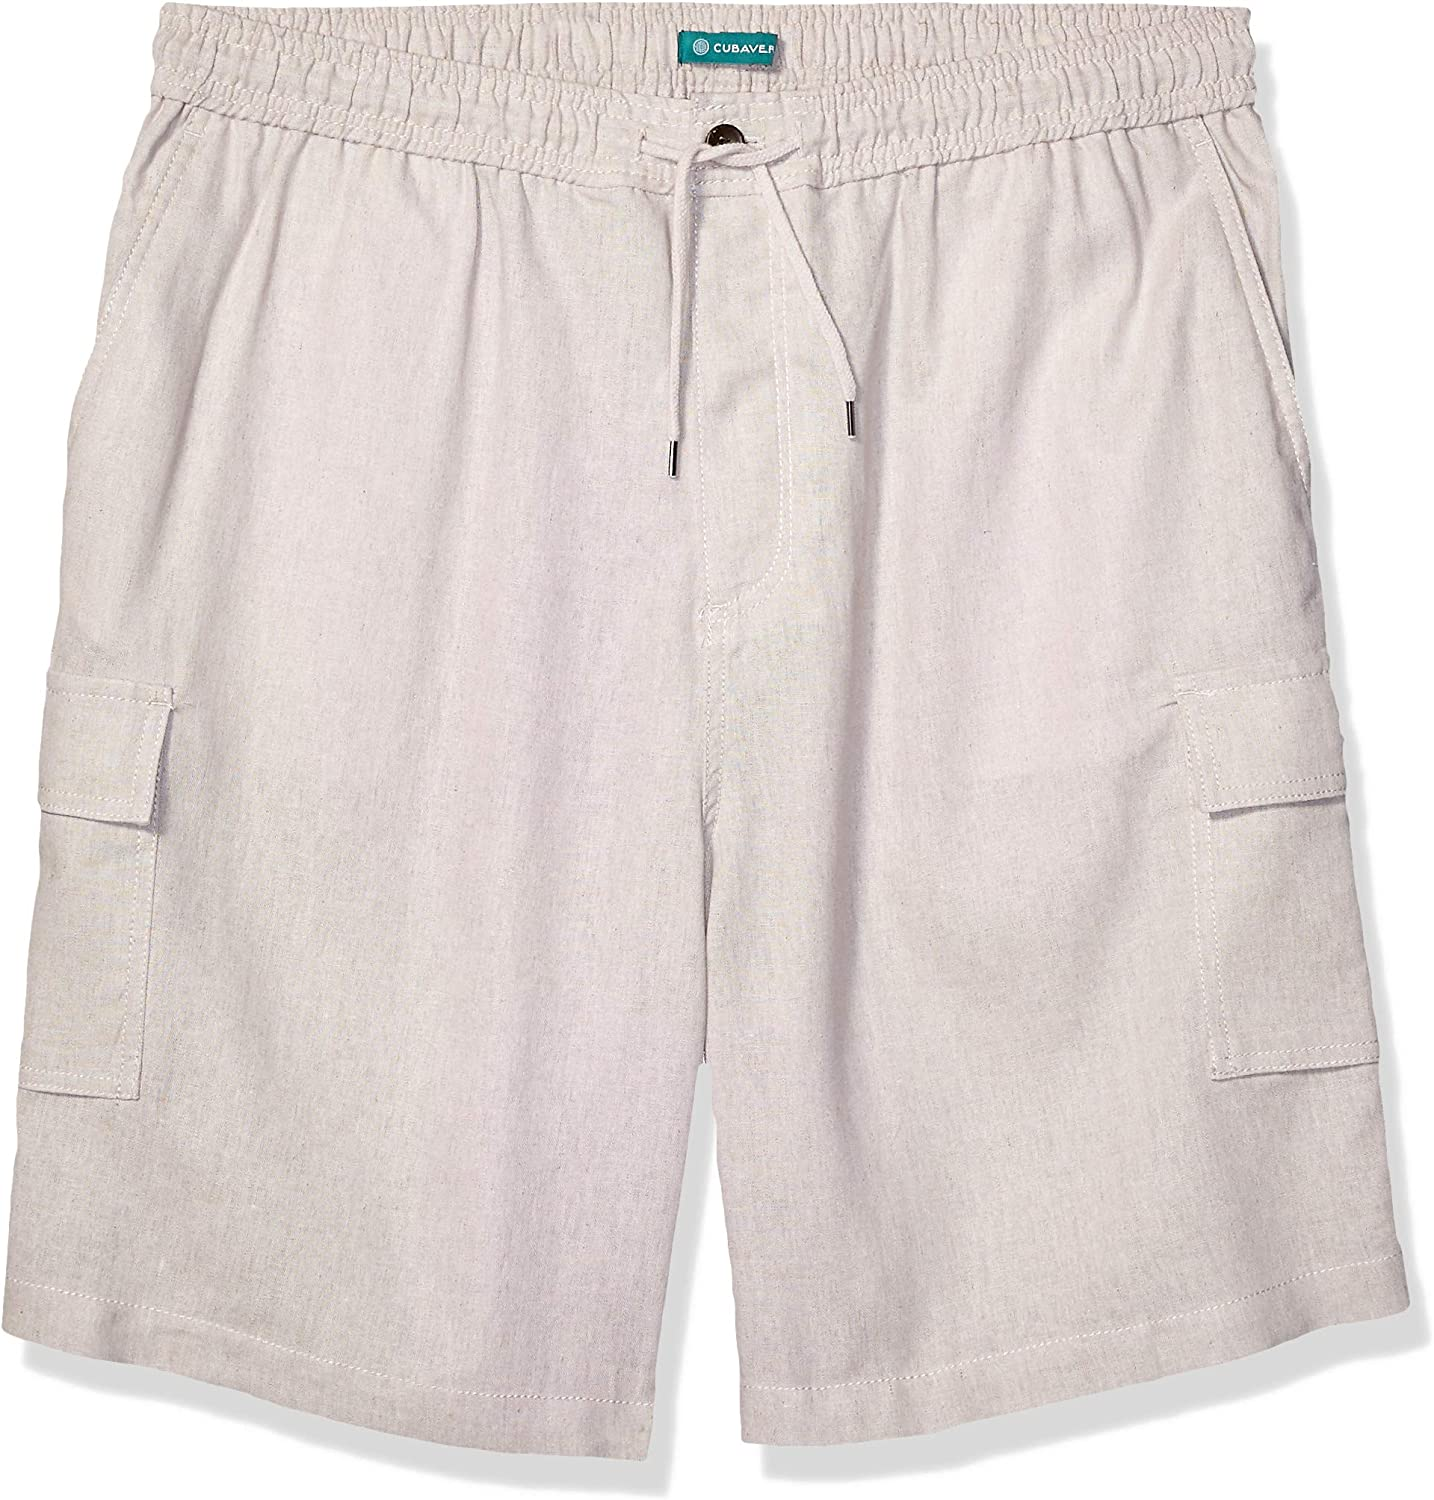 Cubavera Men's Big and Tall Drawstring Linen Cargo Short